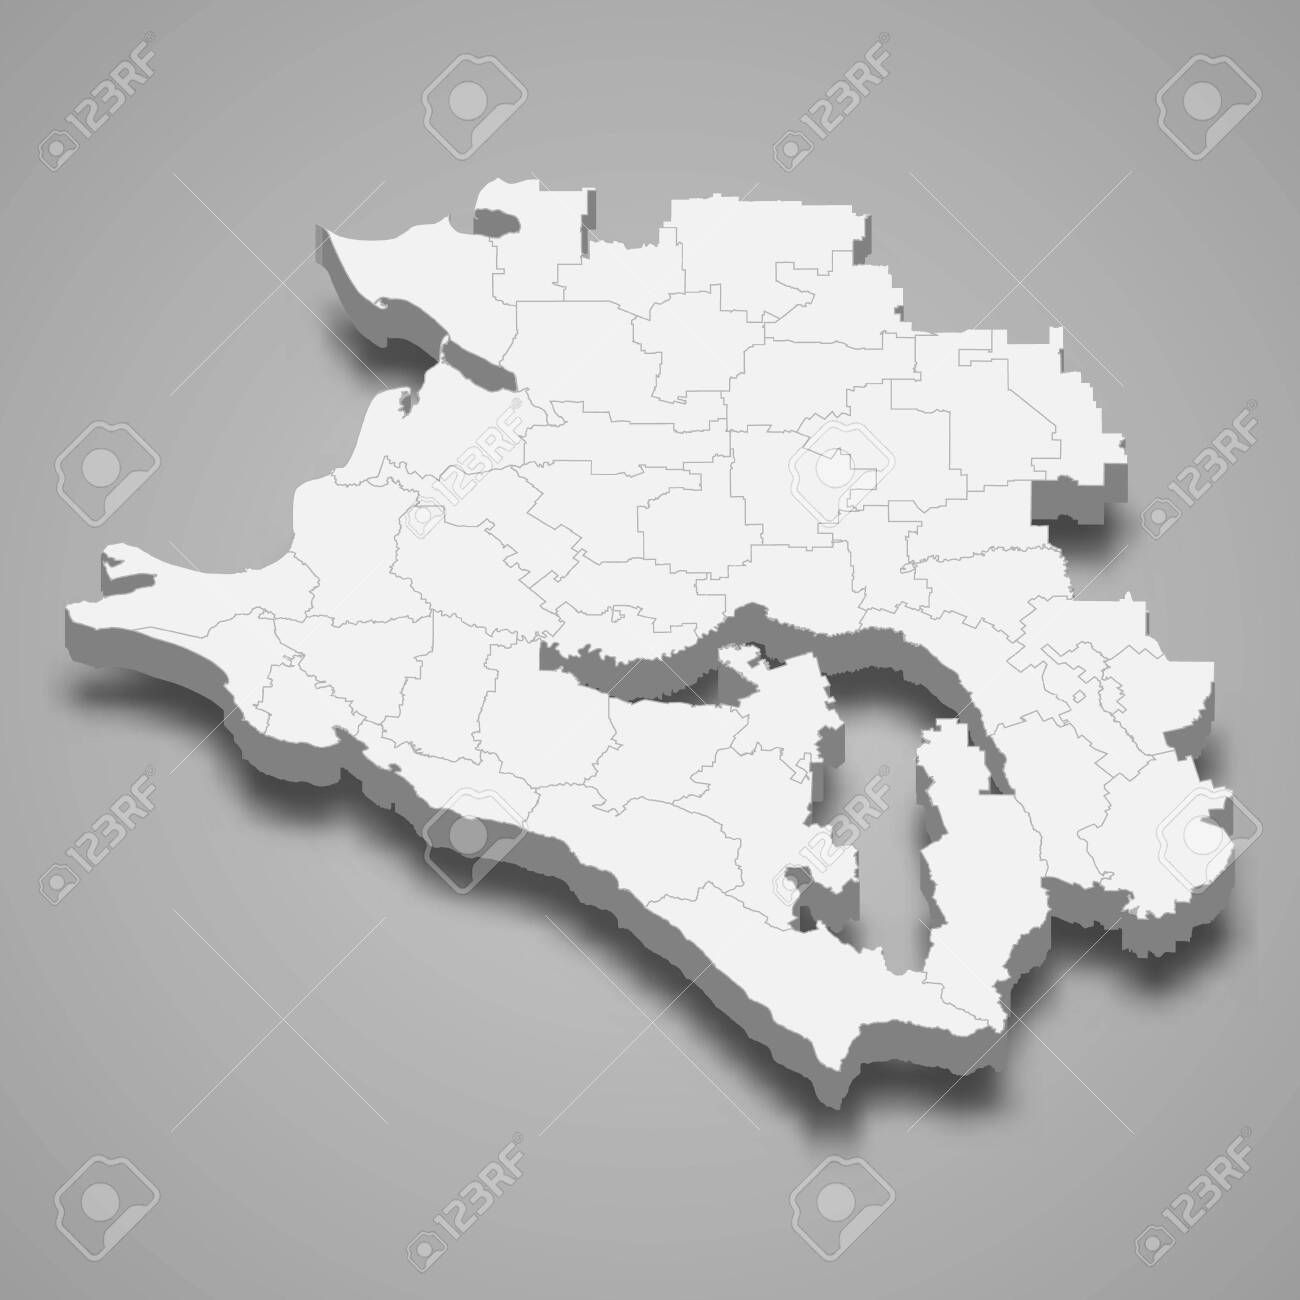 3d Map Of Krasnodar Krai Is A Region Of Russia Sponsored Sponsored Krasnodar Map Krai Russia Region In 2020 Krasnodar Region